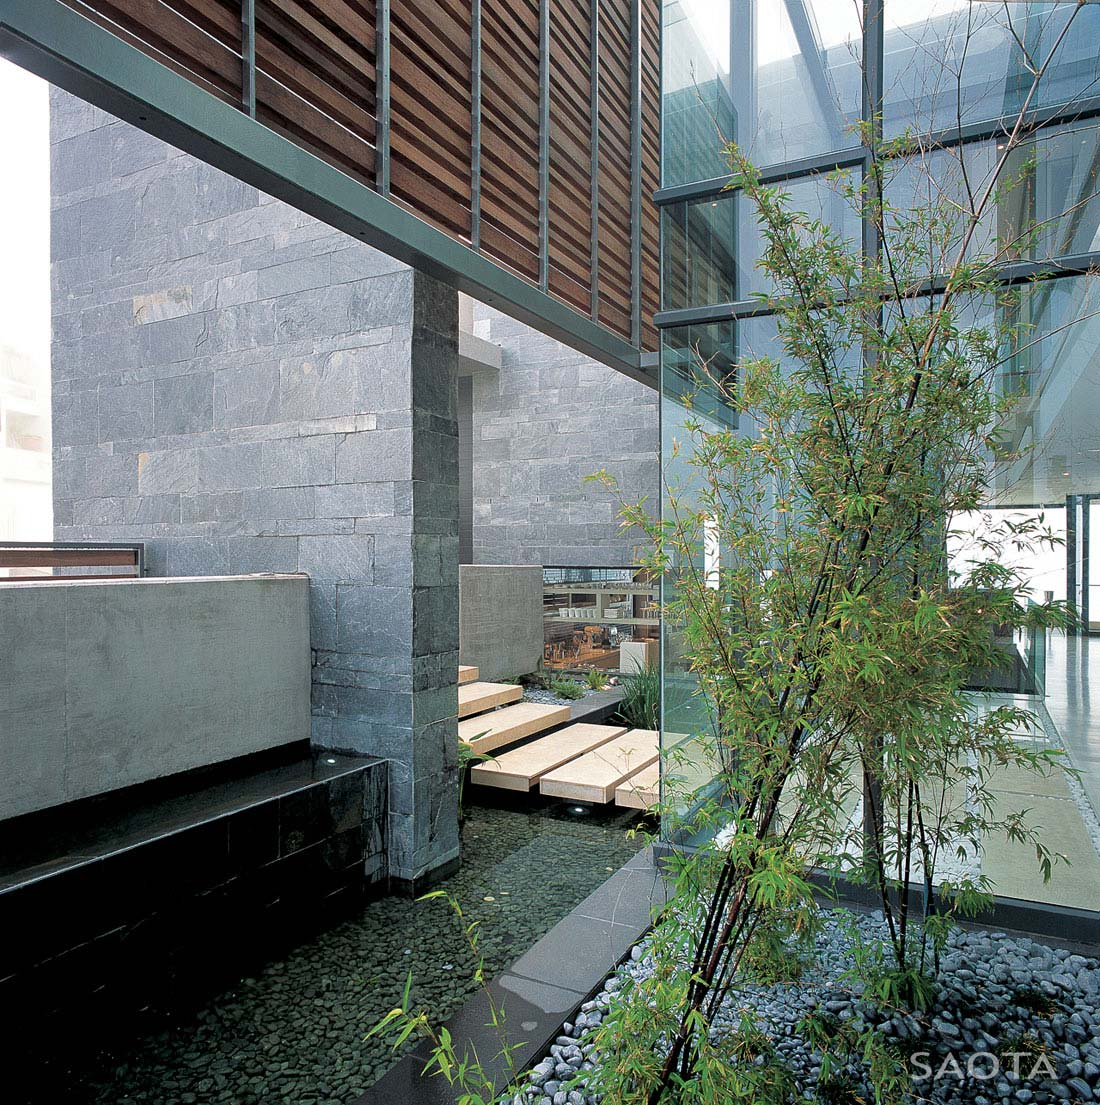 Water Feature, Glass Walls, St Leon 10 in Cape Town, South Africa by SAOTA and Antoni Associates